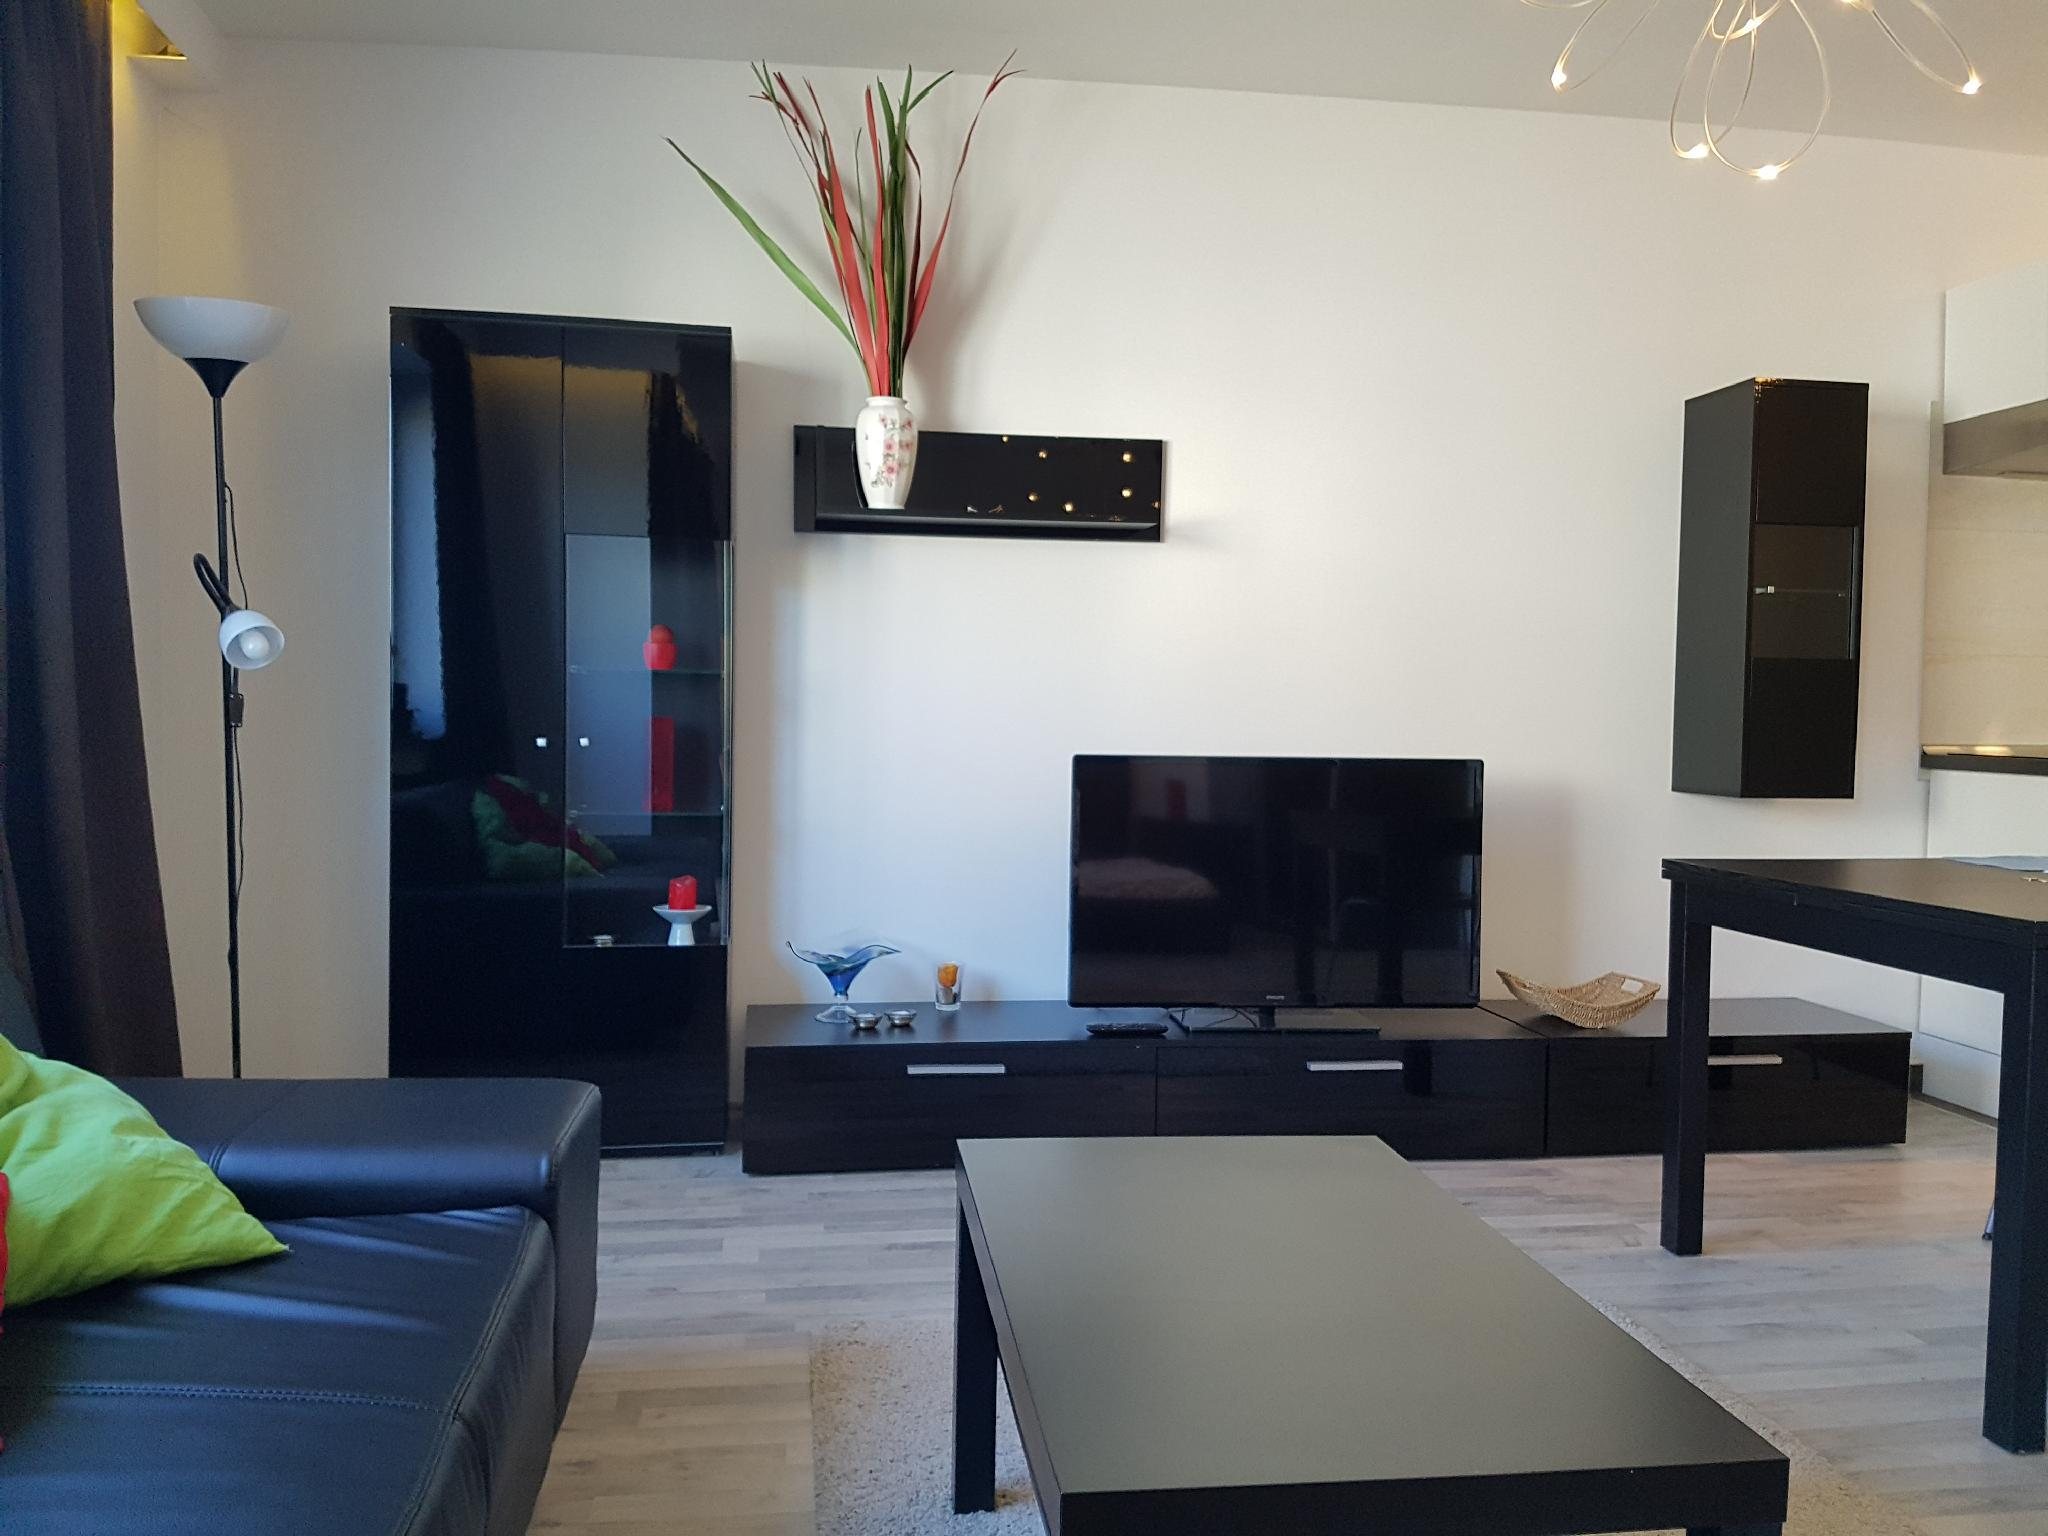 The Luxor 2 modern city apartment Schwabing WLAN